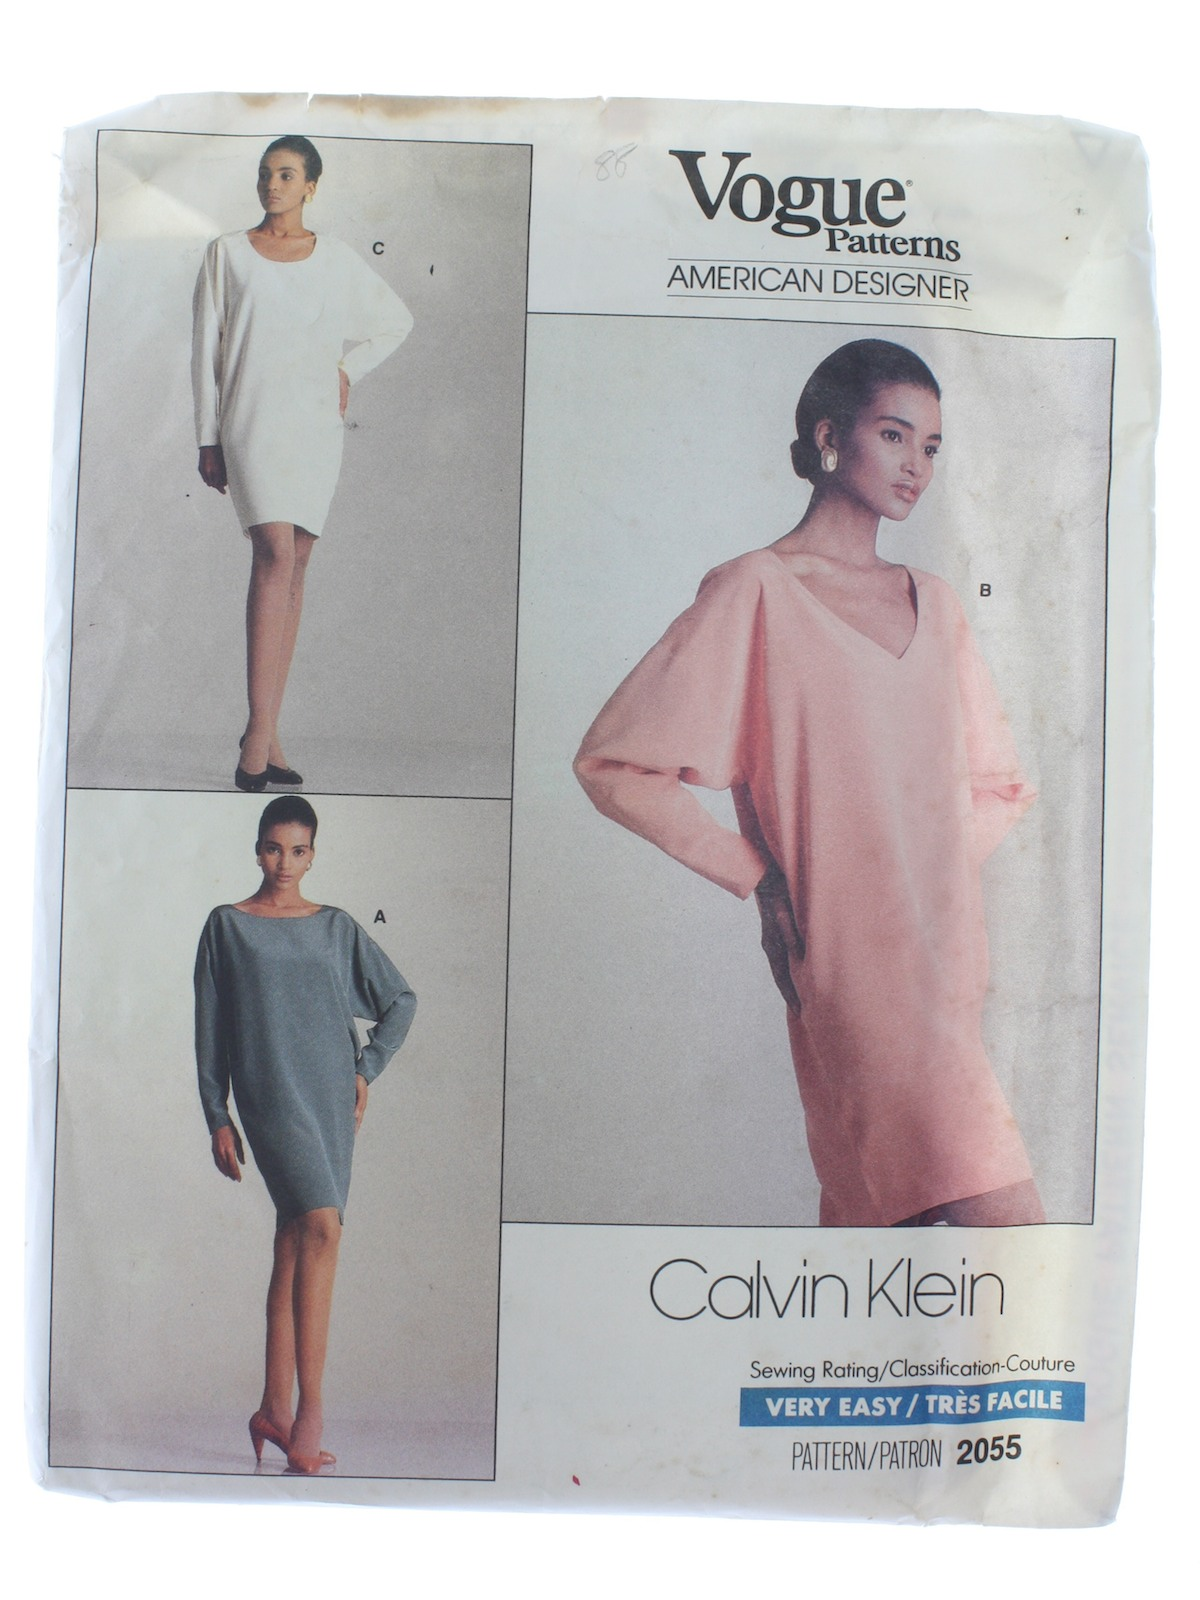 Eighties Vintage Sewing Pattern: 80s -Vogue American